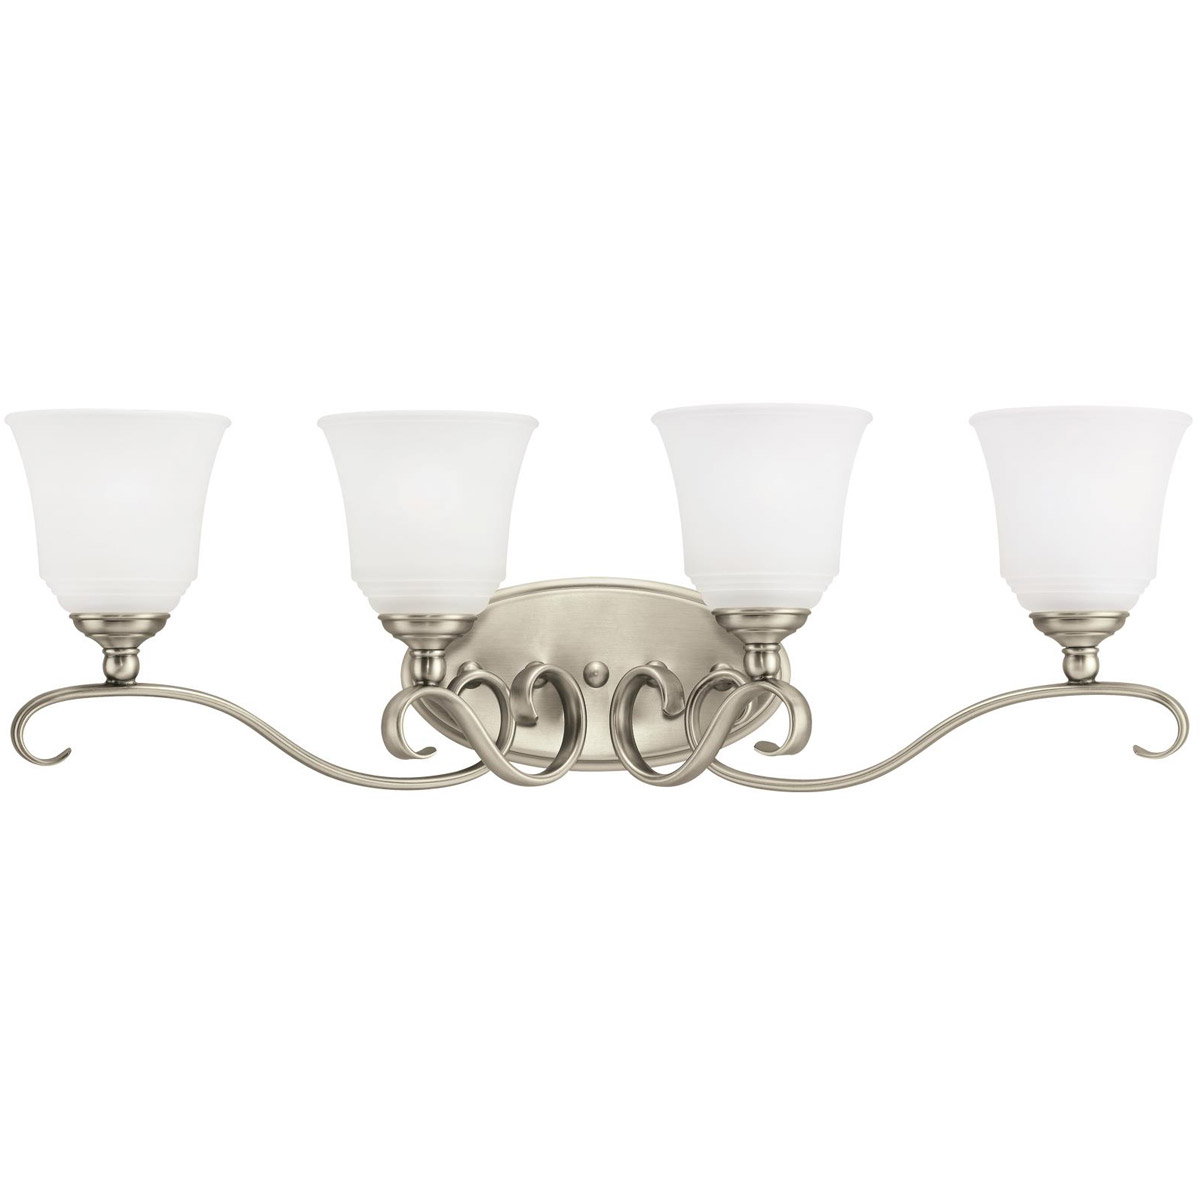 Sea Gull Lighting Parkview 4 Light Bath Vanity in Antique Brushed Nickel 44382-965 photo